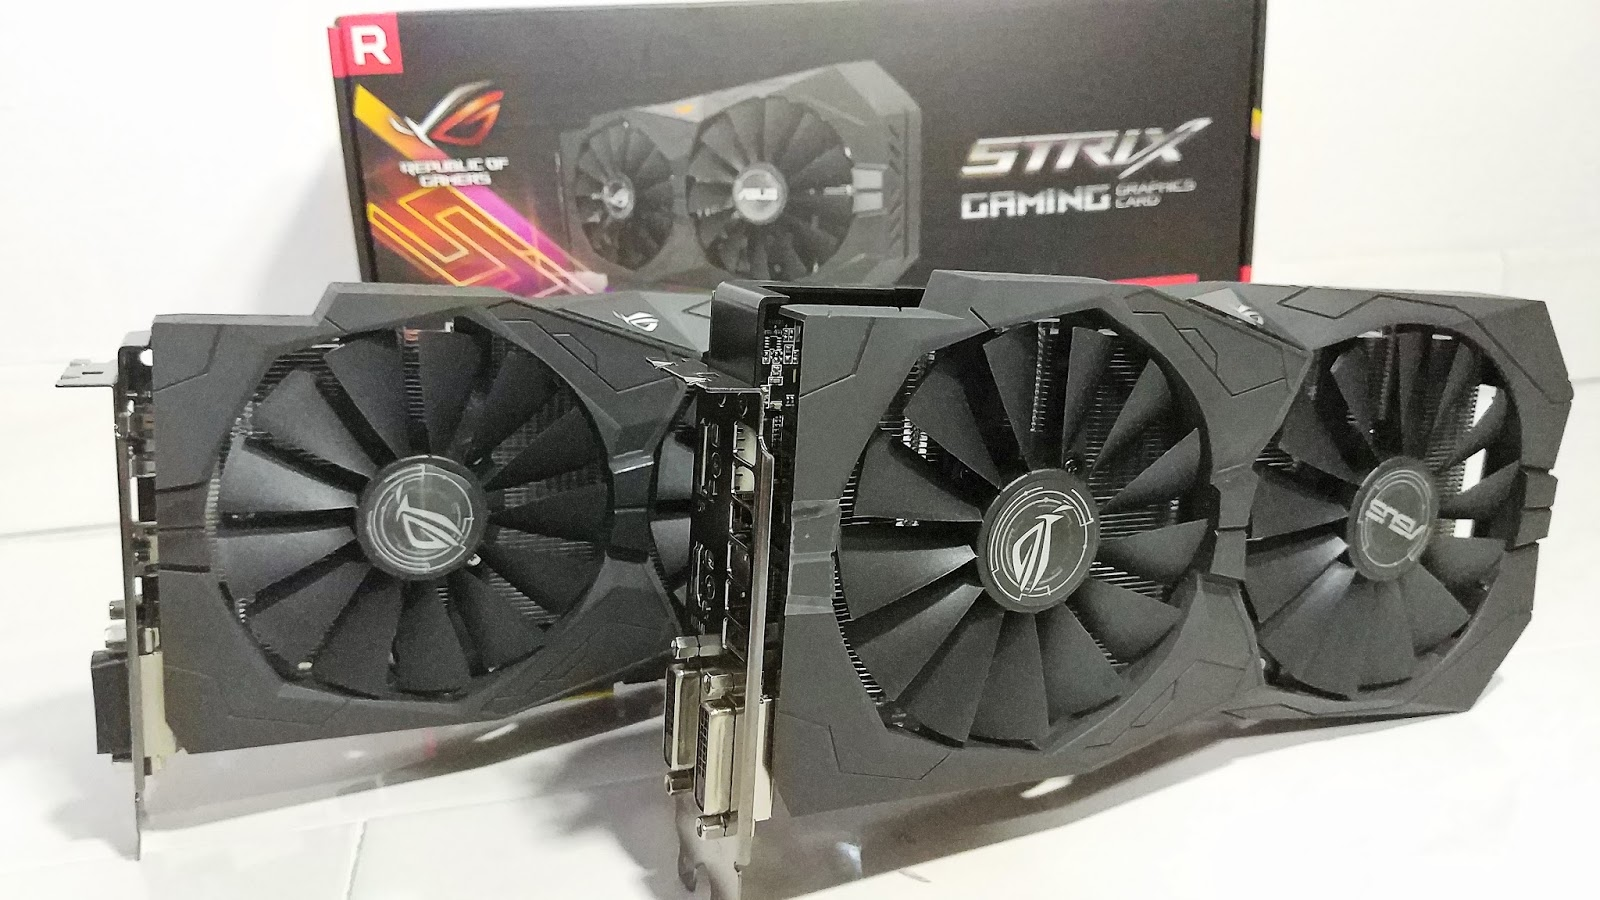 Review of the ASUS STRIX RADEON RX 570 - What's the difference with